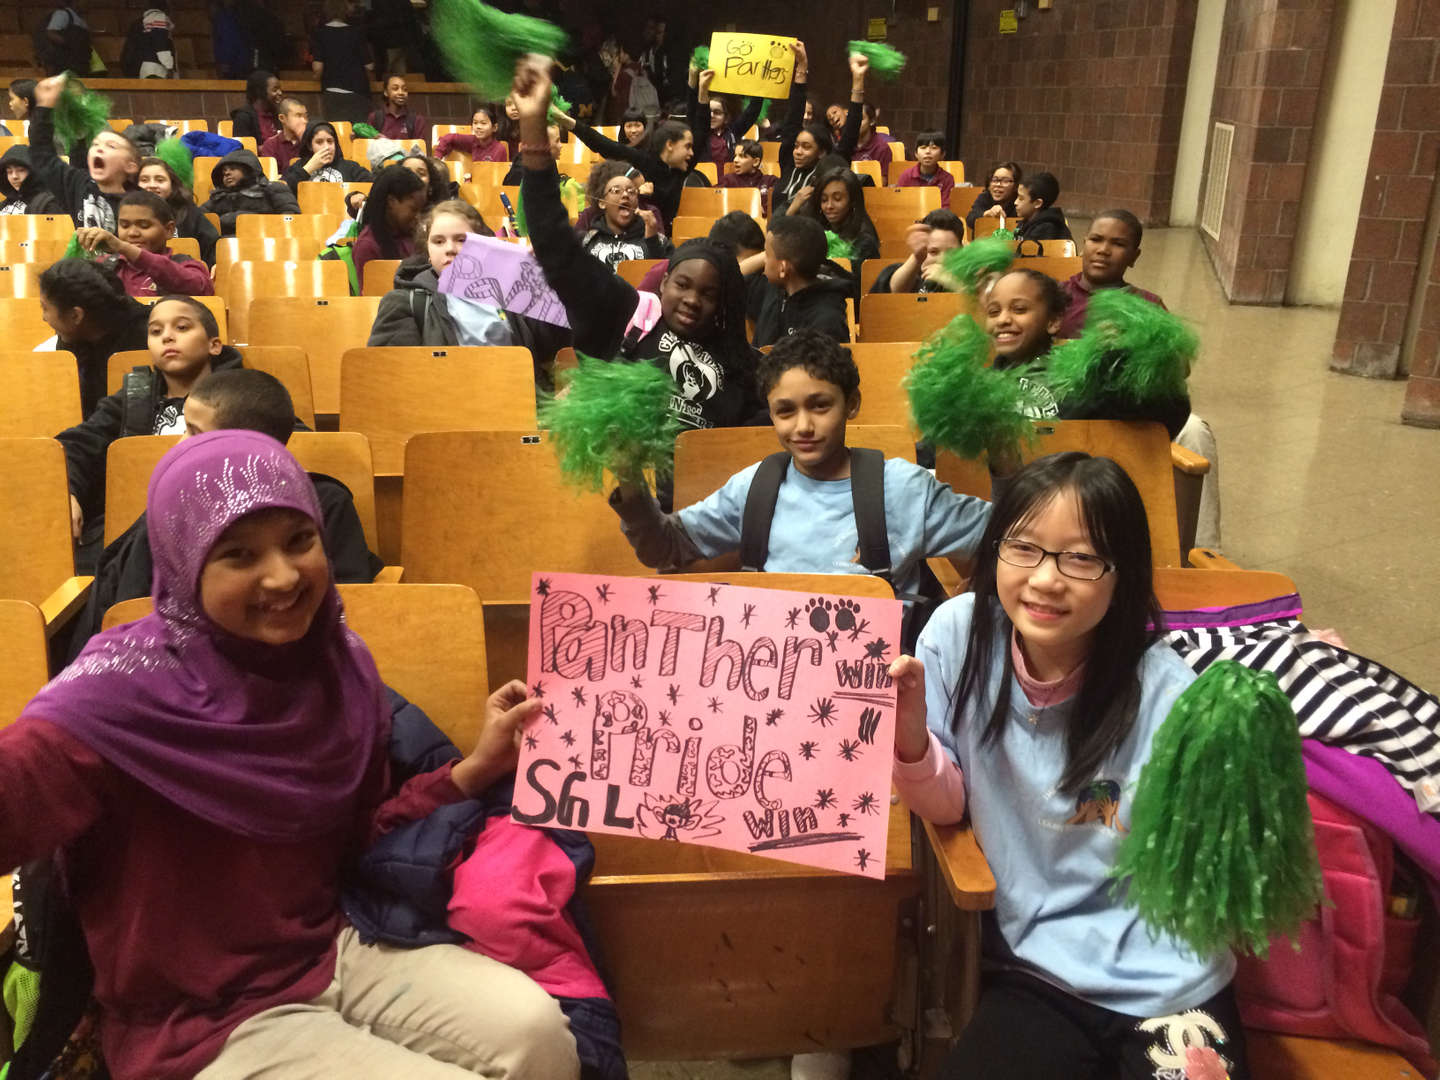 Students in auditorium displaying school pride.